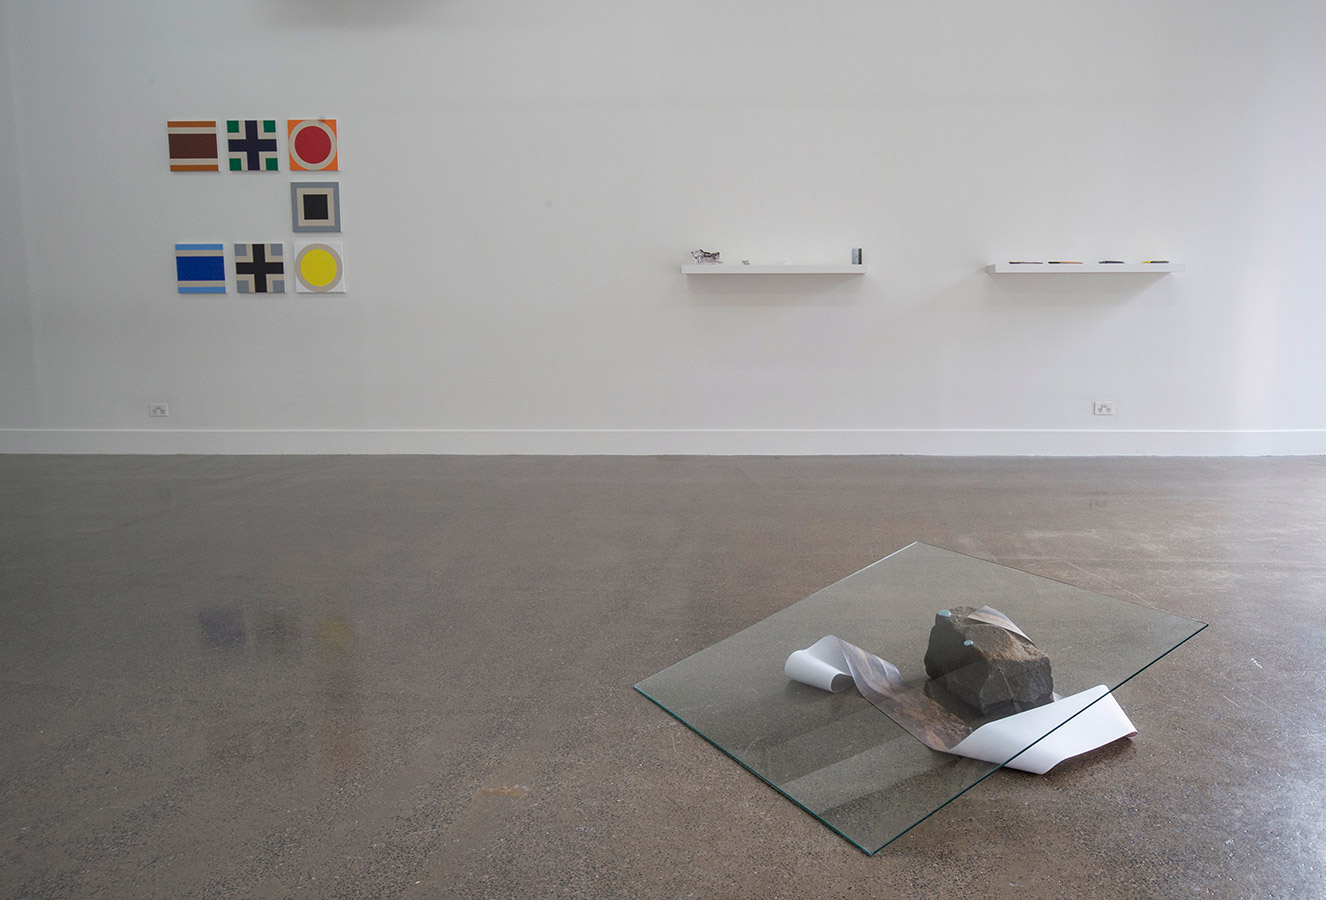 Concrete Post 2, Installation View. Project Space/Spare Room. 2015